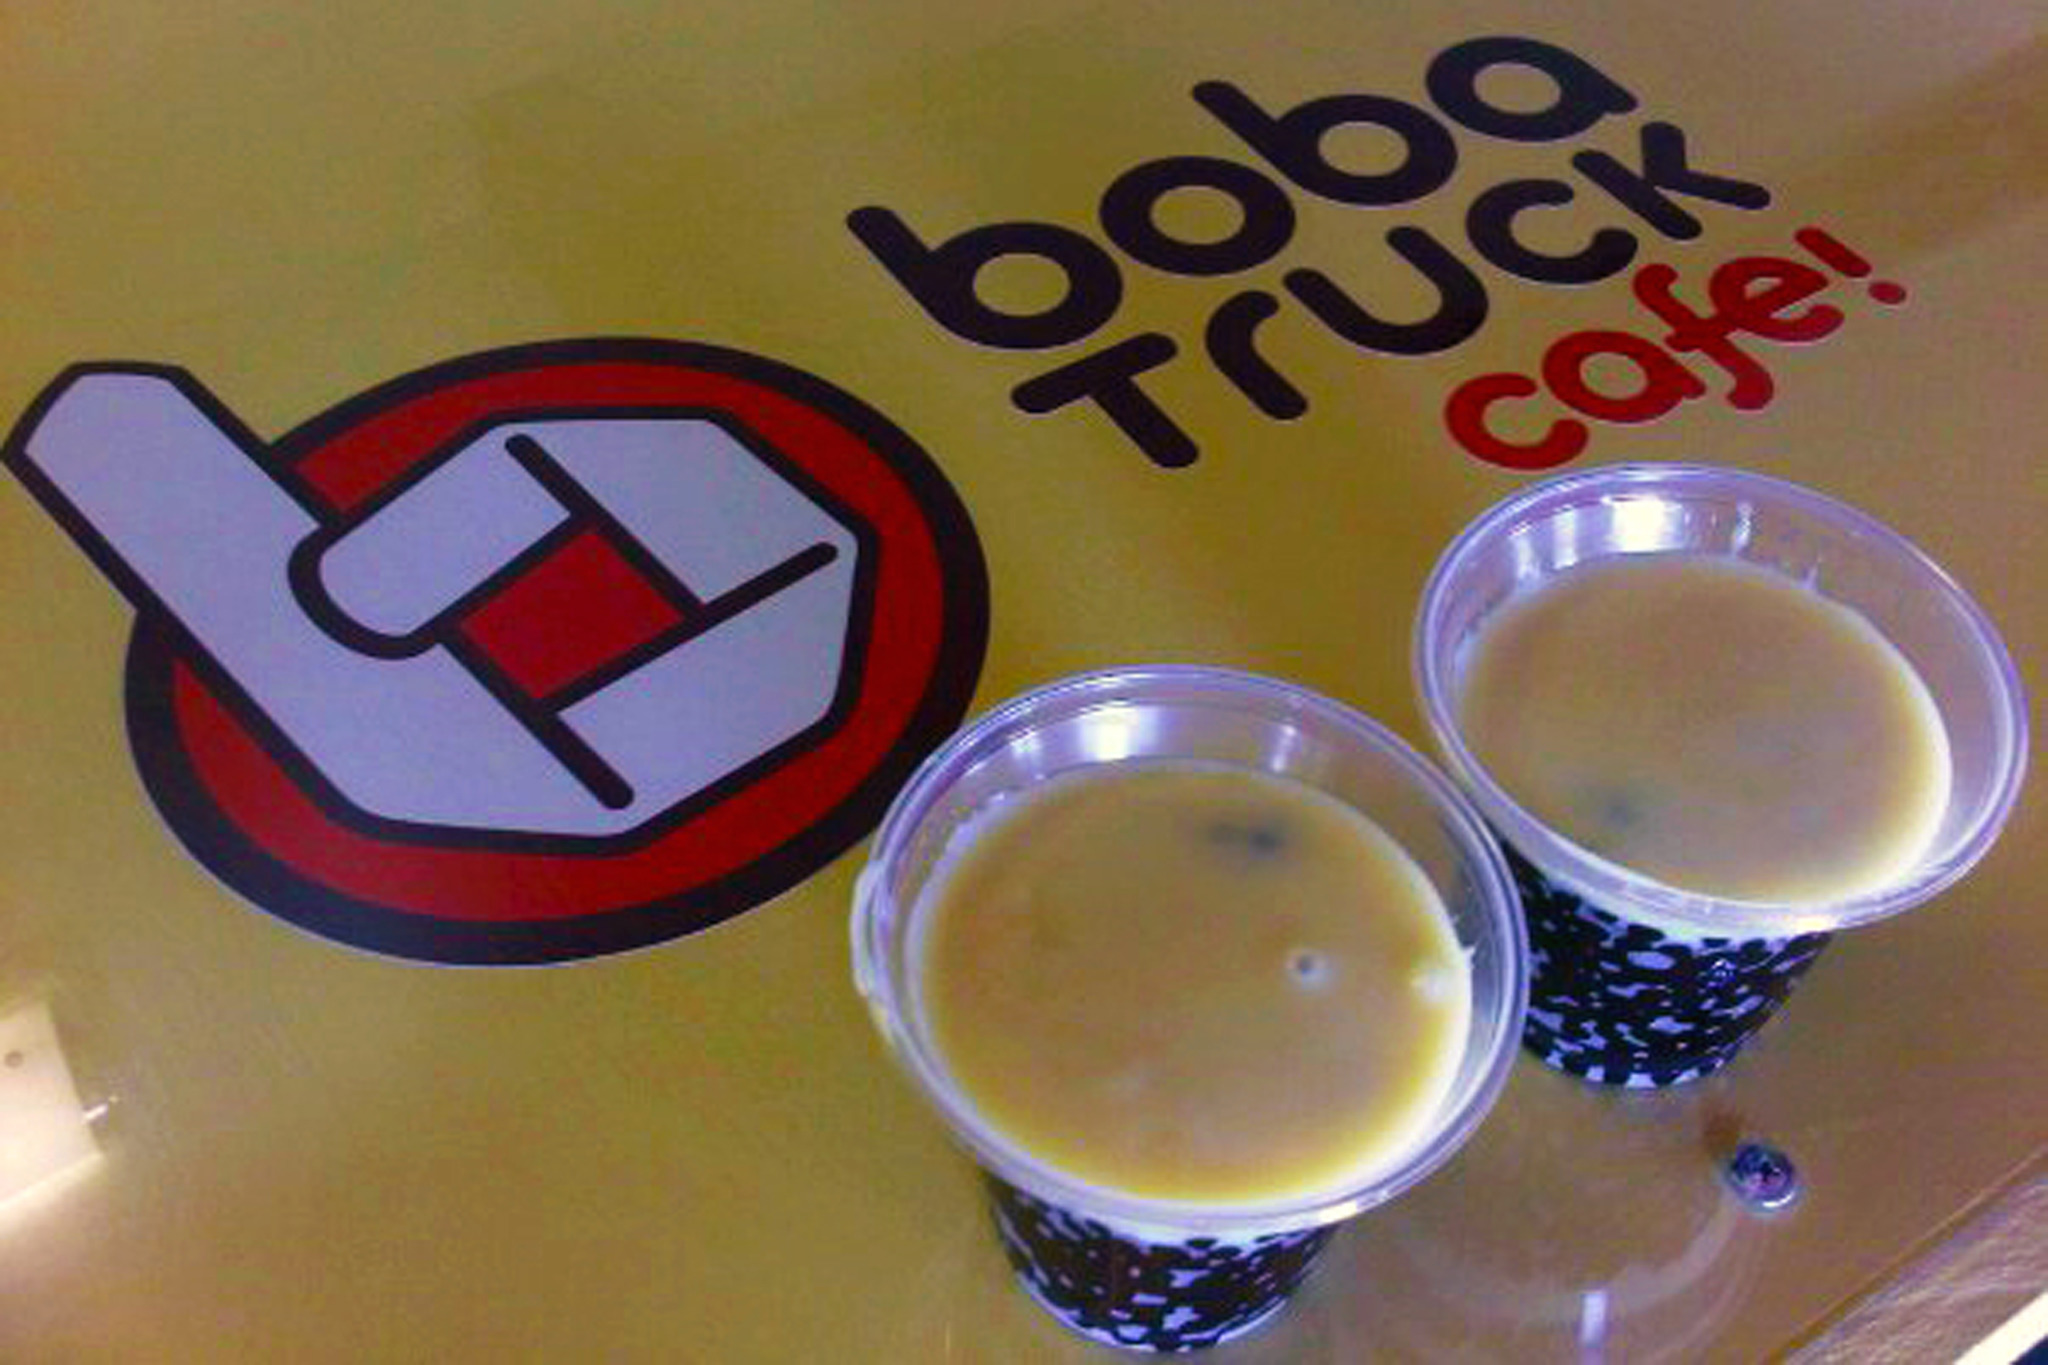 The Boba Truck